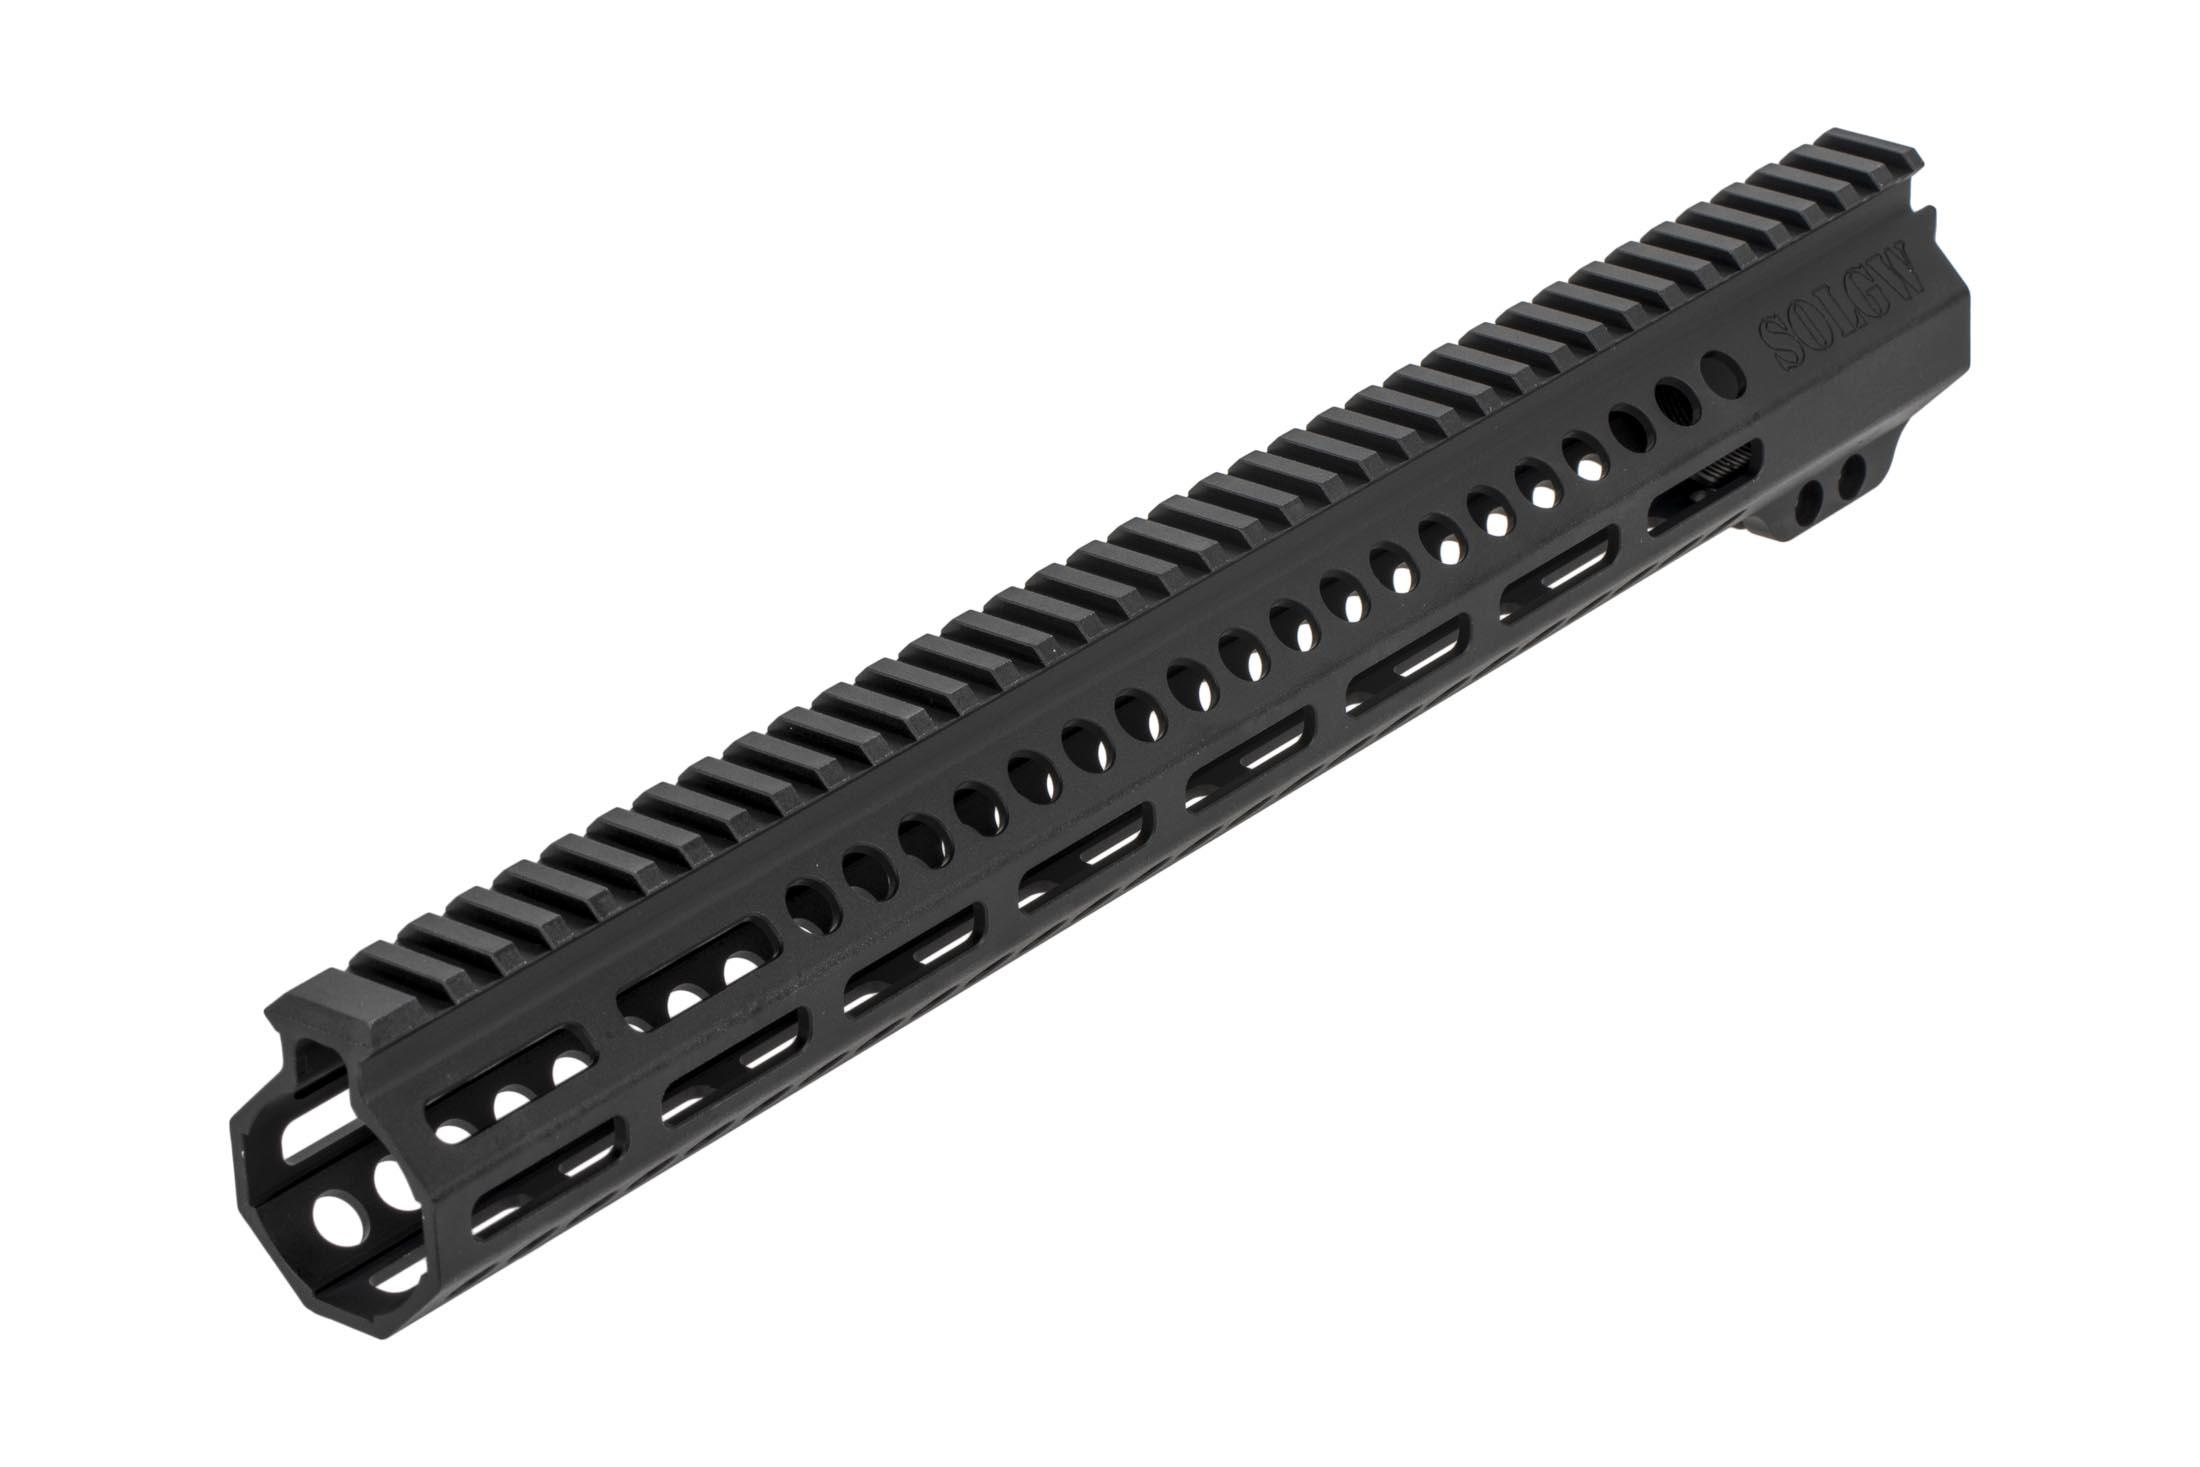 Sons of Liberty Gun Works free float 15in Exo2 freefloat AR 15 handguard has a full length M1913 Picatinny top rail